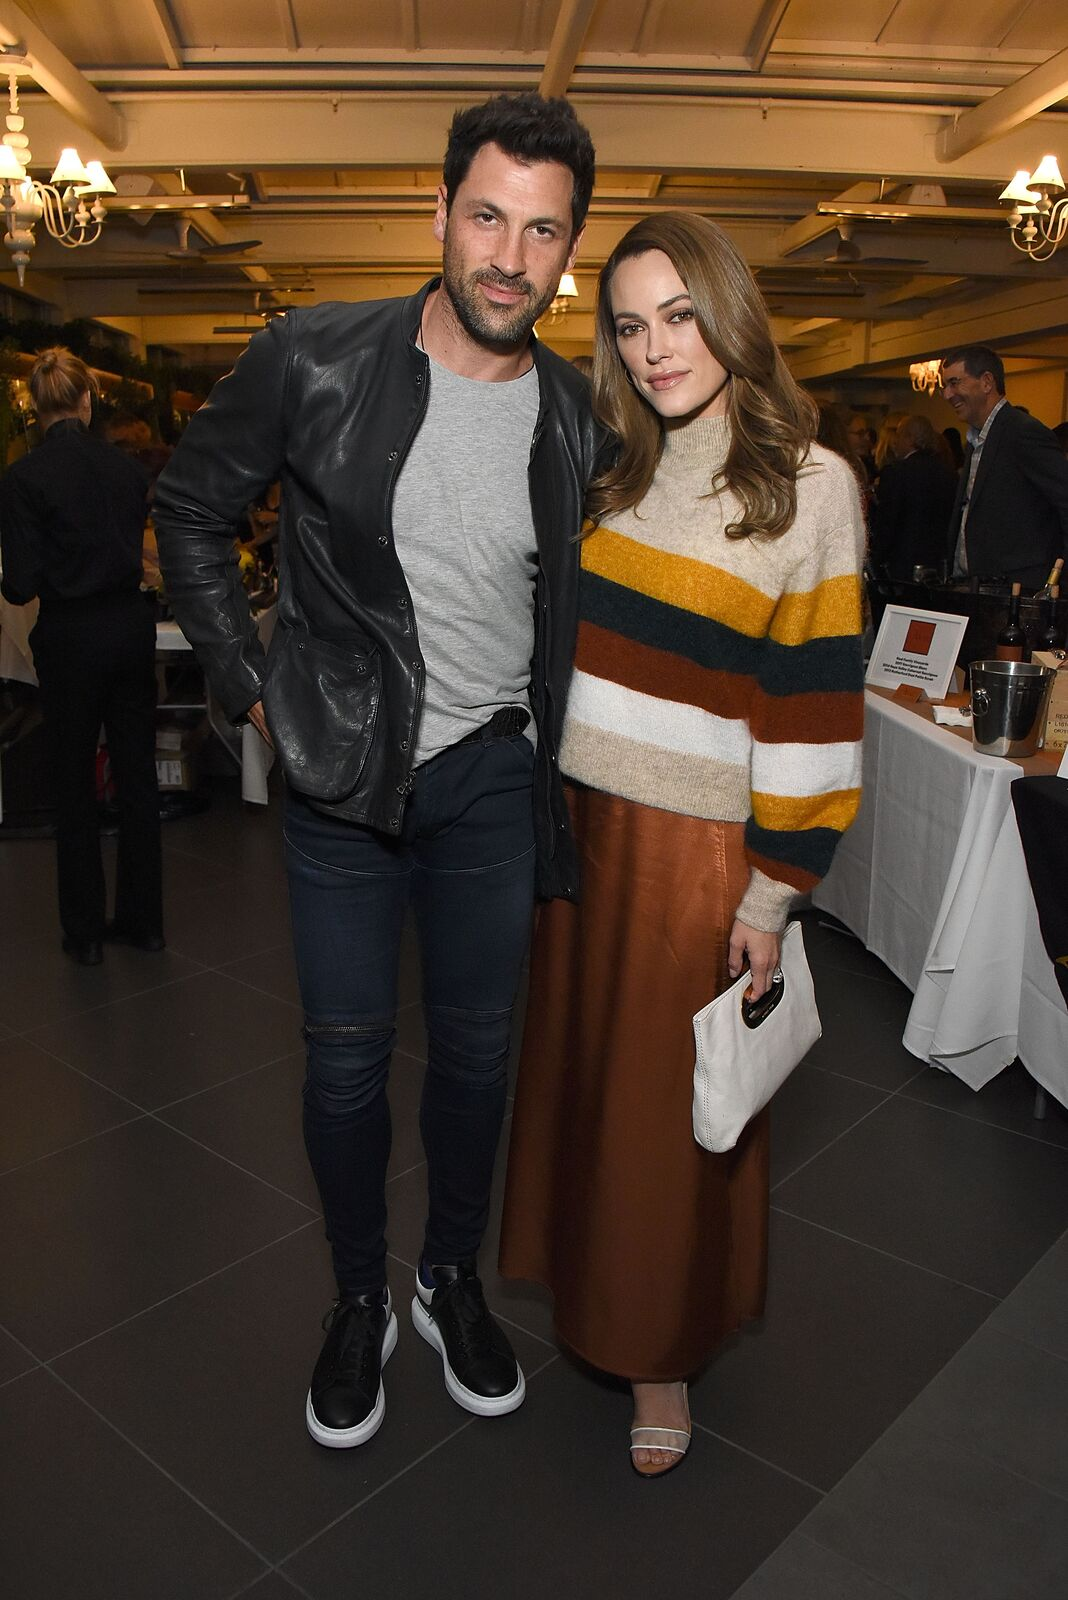 Maks Chmerkovskiy and Peta Murgatroyd attend the March of Dimes Signatures Chefs Auction Los Angeles on October 11, 2018.   Source: Getty Images